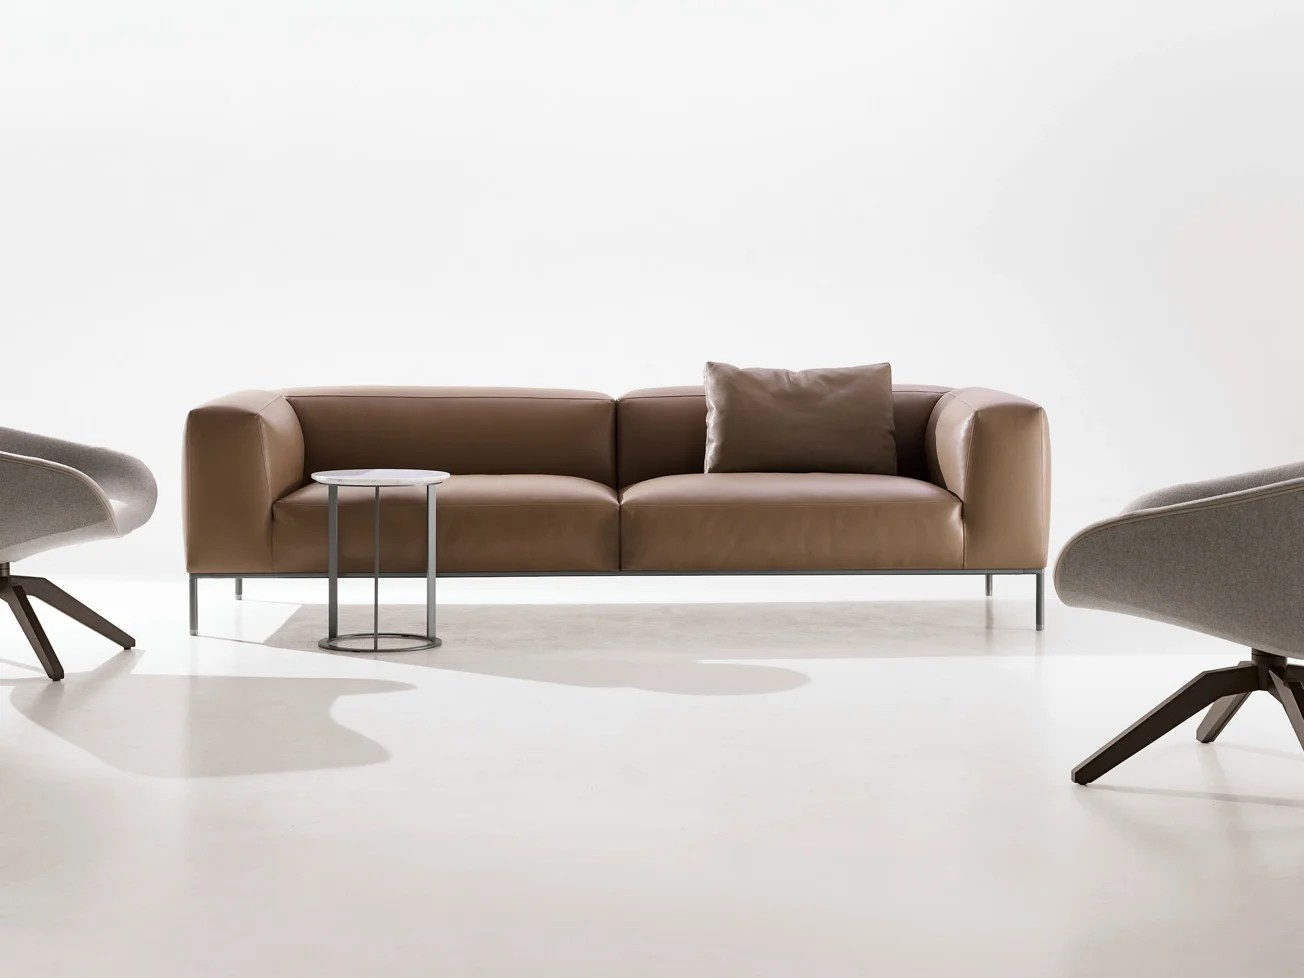 Sofaland Glasgow Studio9 Studio9 19 Elegant Where To Buy Leather Sofa